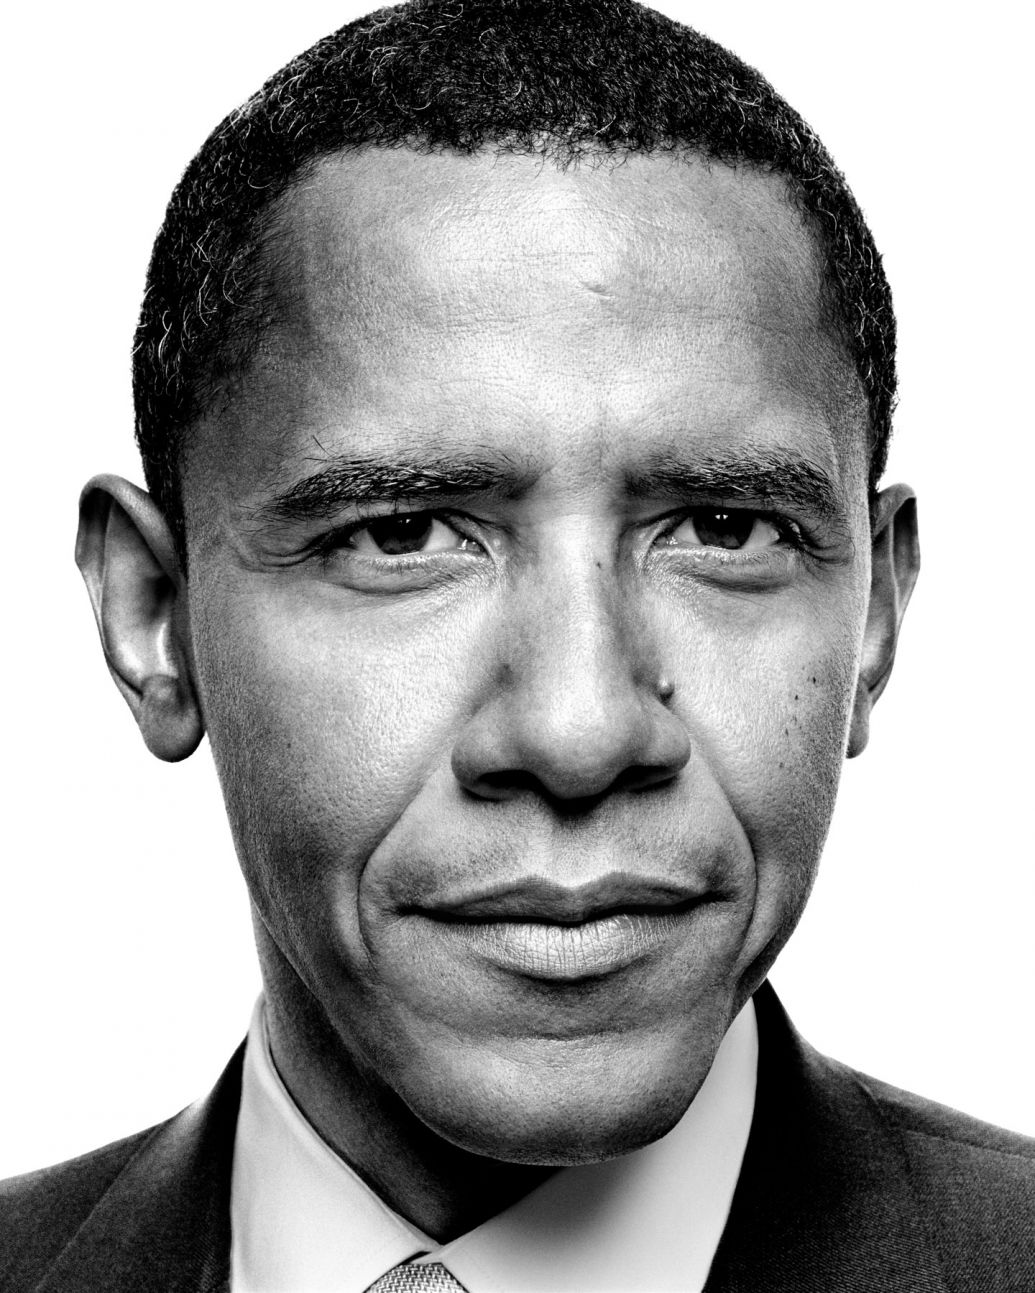 Barack Obama Portrait photography